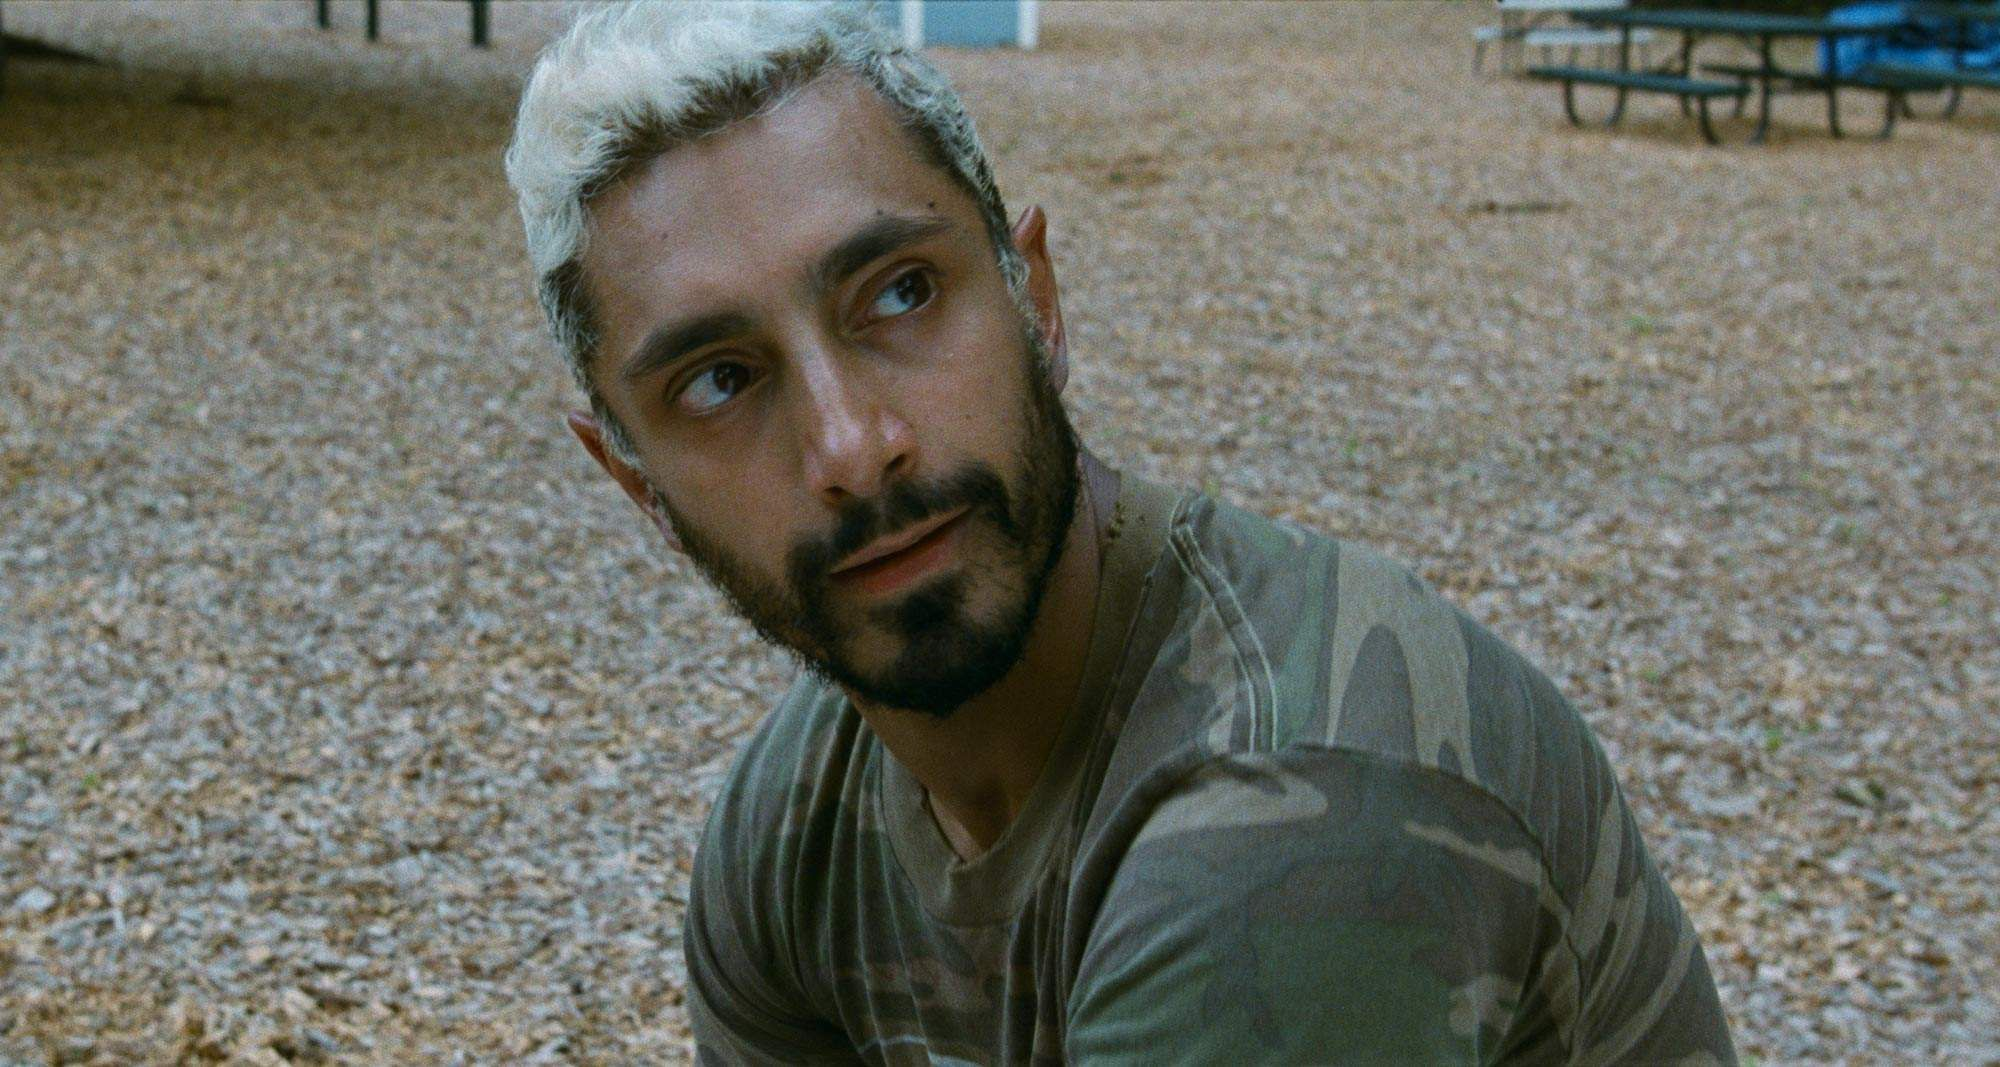 A still from Sound of Metal starring Riz Ahmed